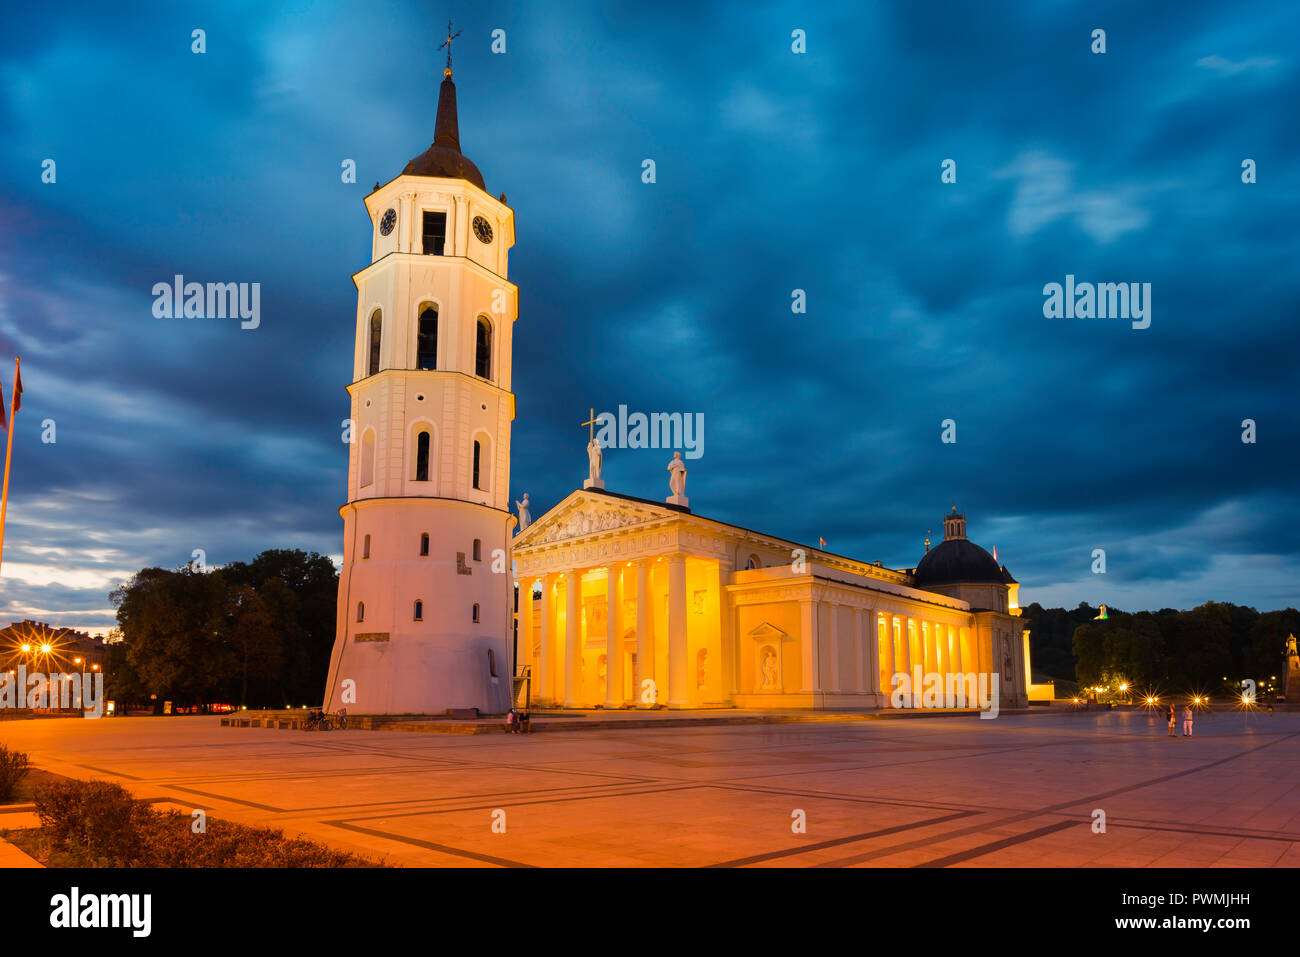 Vilnius Lithuania Cathedral Square, view at night of Vilnius Cathedral and the Belfry bell tower in the city's main square, Baltic States. - Stock Image